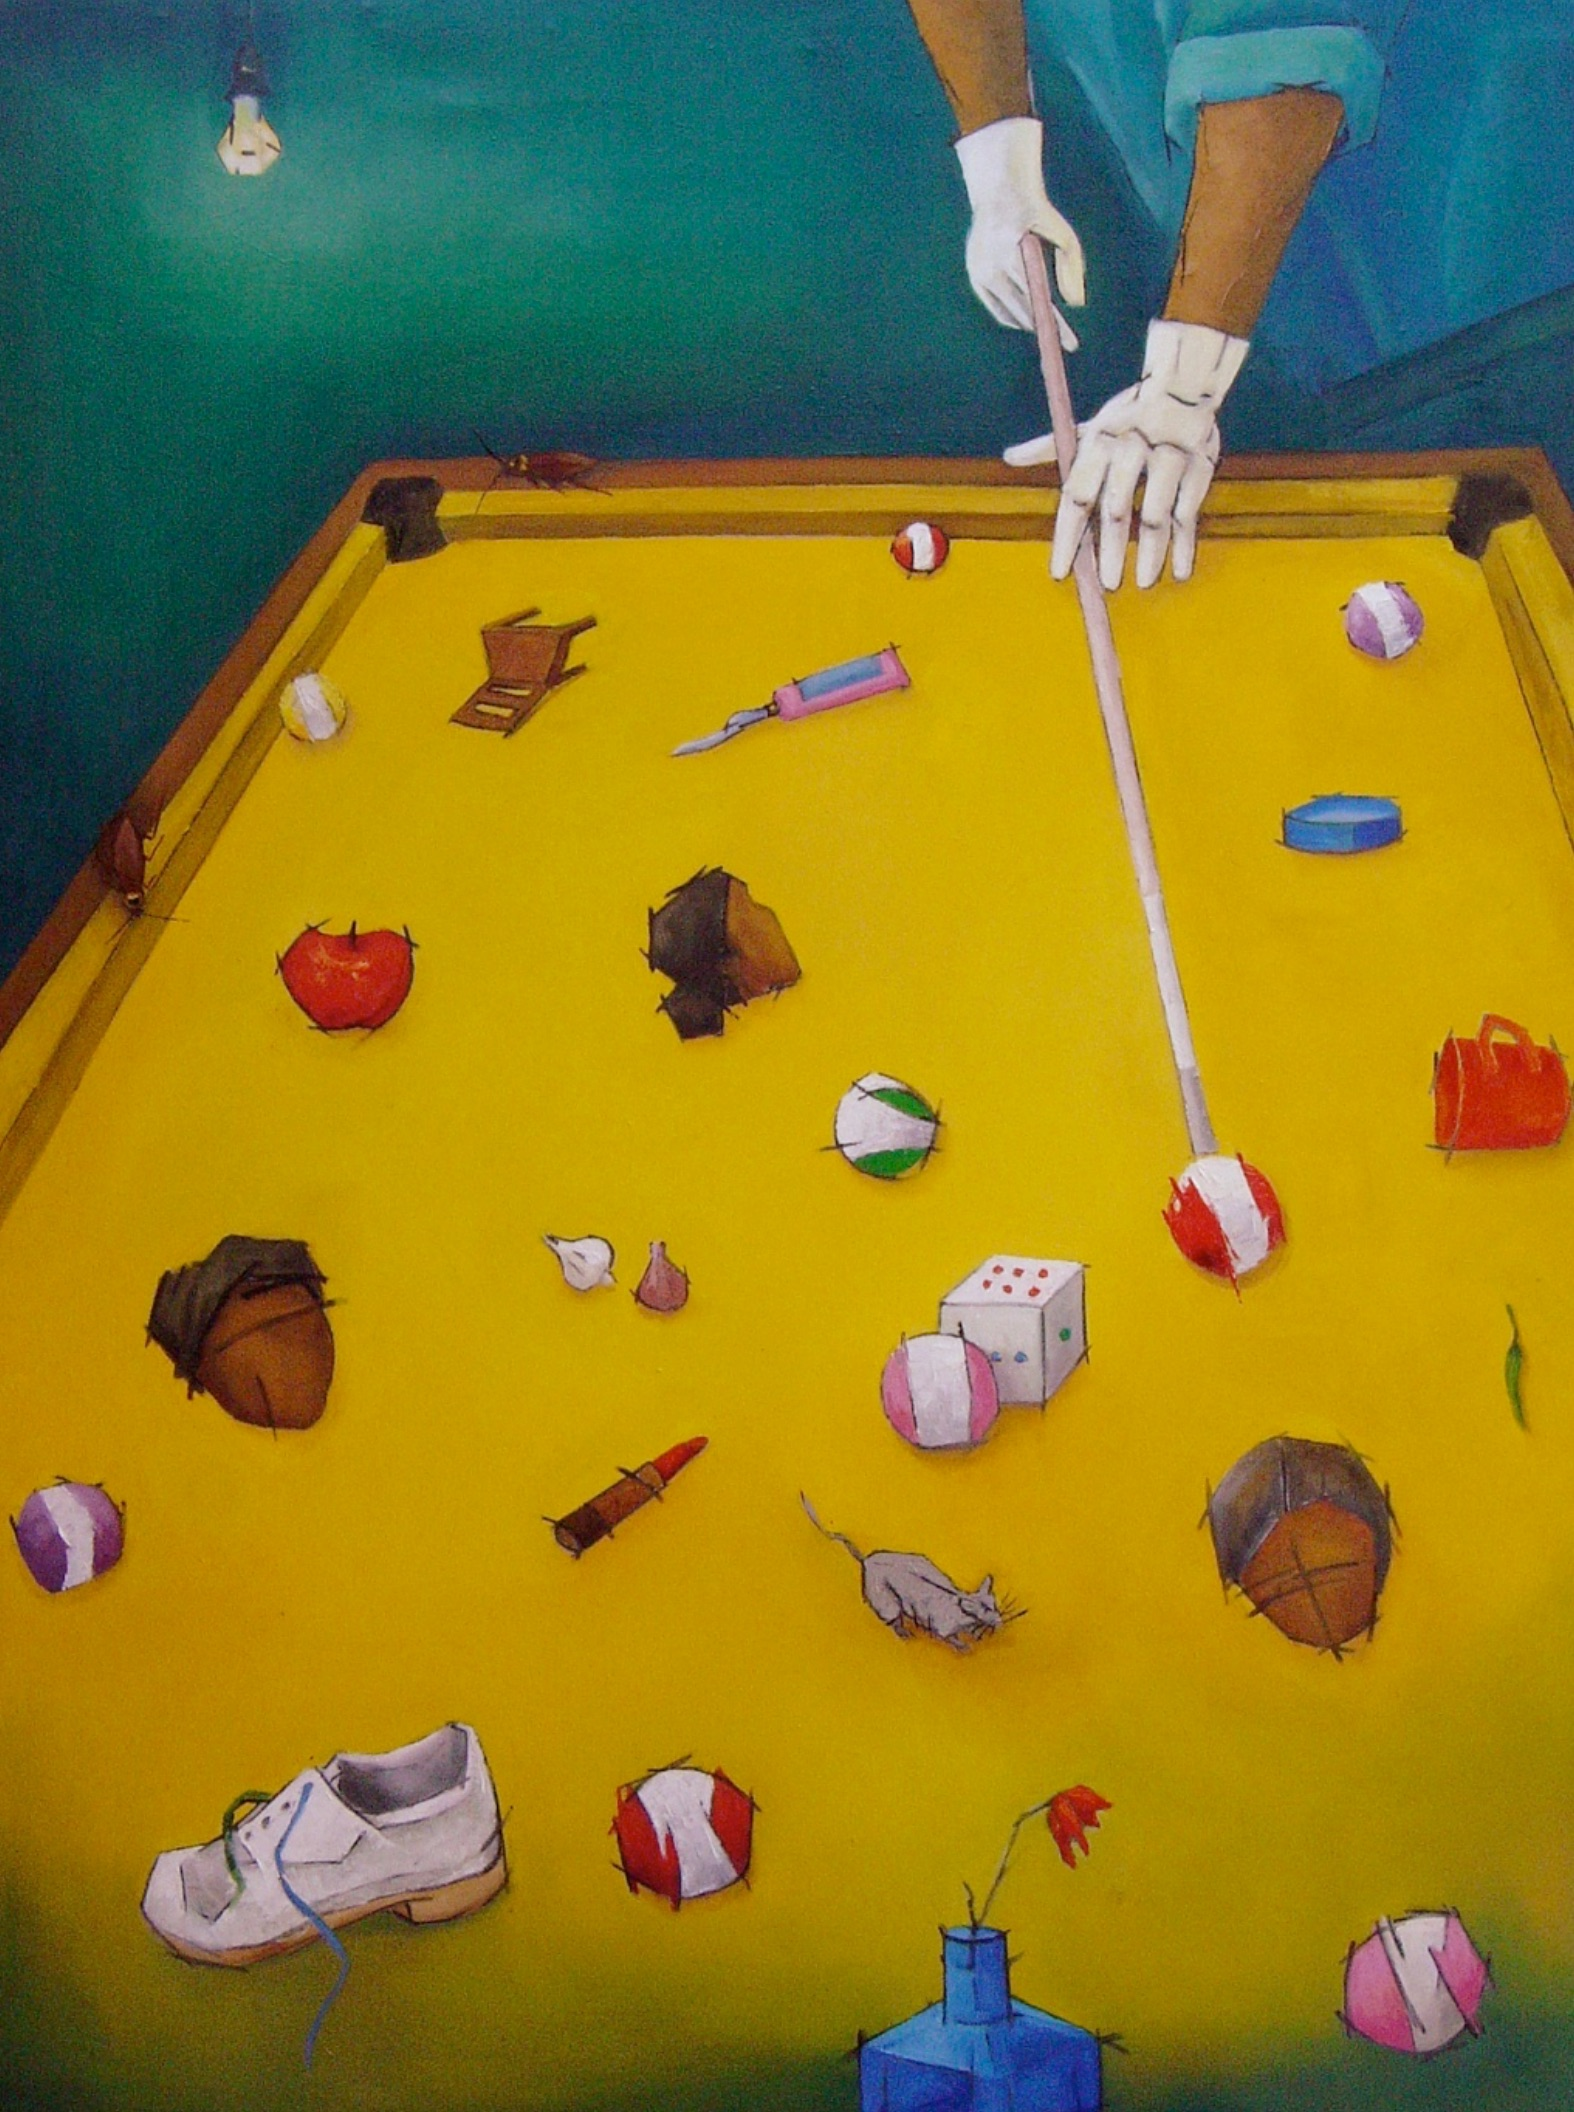 My Time-5   This painting mirrors our present day situation where we find ourselves nothing more than balls in a snooker table. There are behind-the-scenes players who set the board and they are too powerful to detect or deter. We are part of this huge game they are playing at their whims. I have painted the snooker table in yellow to suggest the dismal face of our present age. This patch of yellow is surrounded by a mysterious twilight zone.